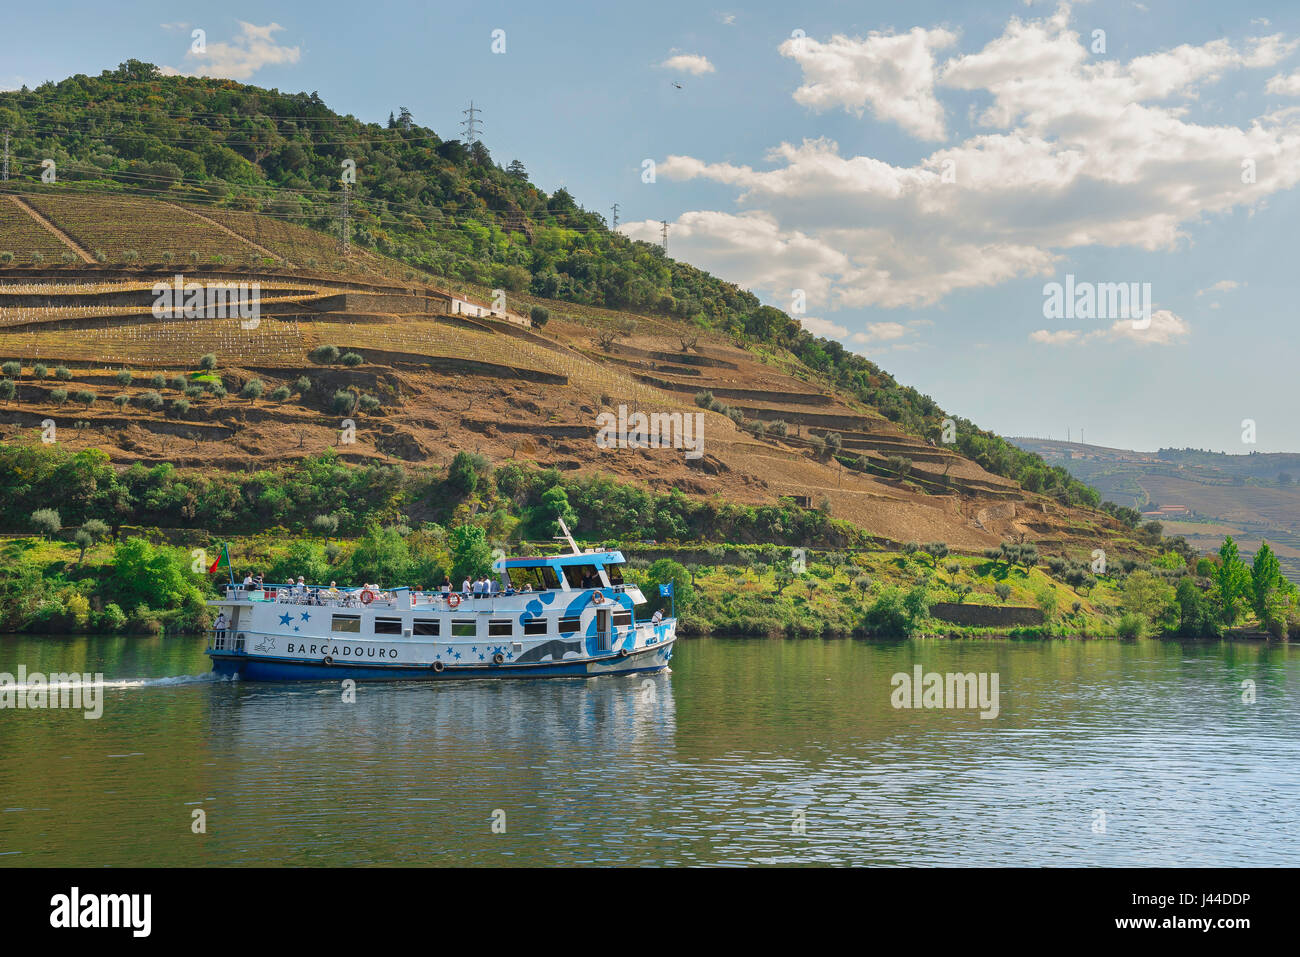 Portugal cruise Douro, a cruise ship carrying day-trippers heads down the Douro River Valley close to the port wine - Stock Image